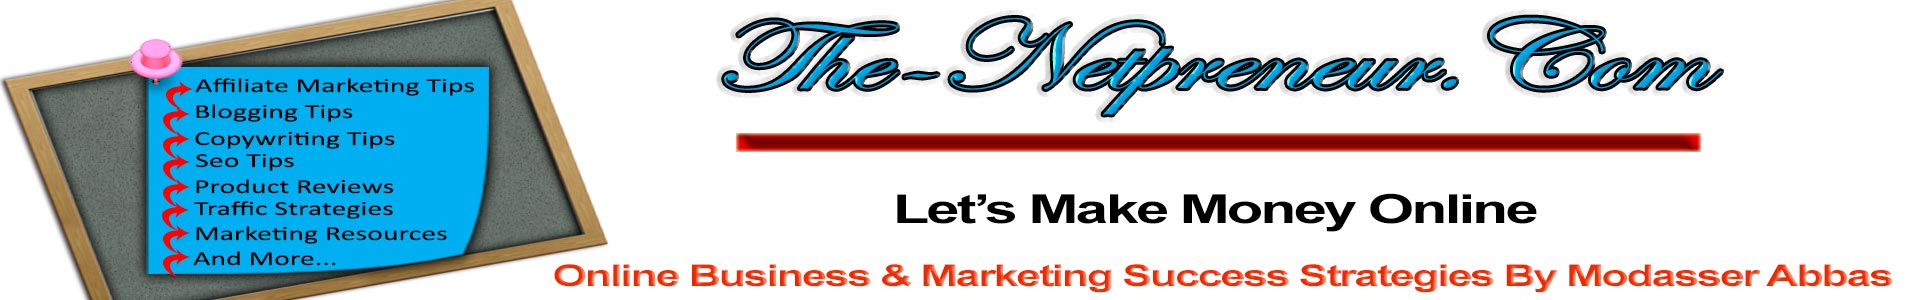 The-Netpreneur's Internet Marketing Strategies